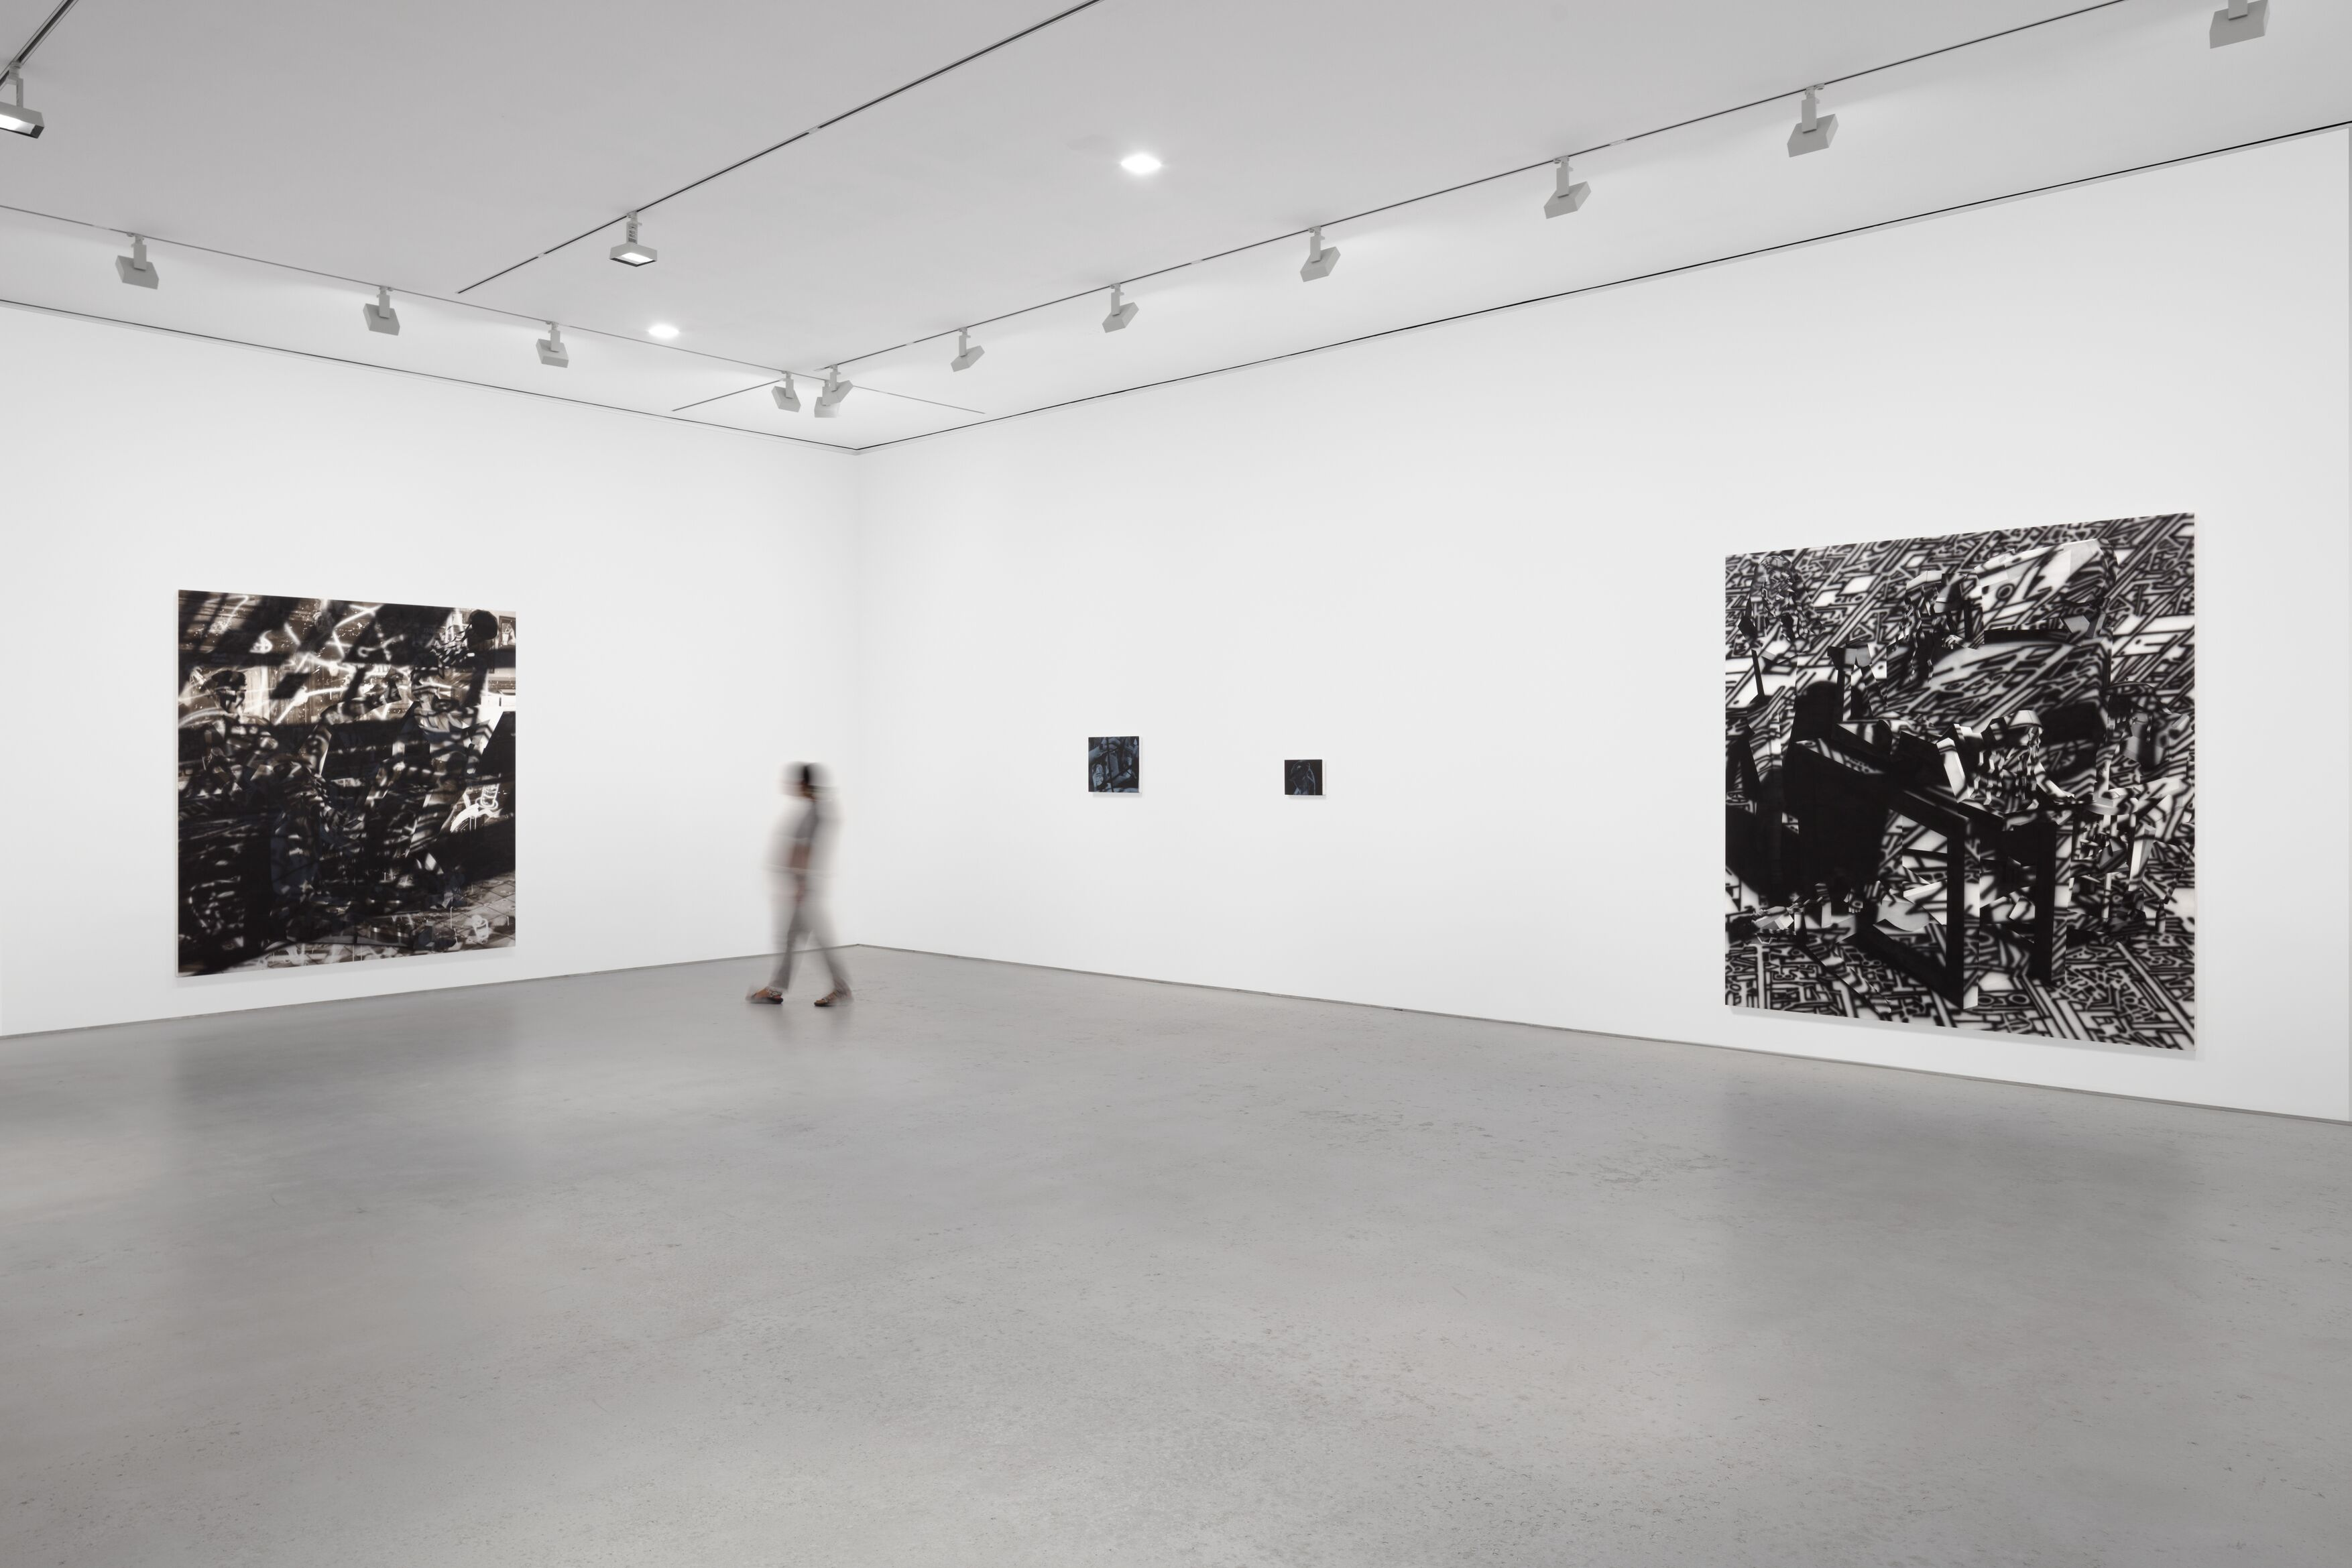 Installation view, 'Avery Singer. Reality Ender,' Hauser & Wirth New York, 22nd Street, 2021. Picturing: 'Side Quest,' 2021; 'Sculptor (Study),' 2021; 'Sculptor,' 2021; 'Happening,' 2021, © Avery Singer, courtesy the artist, Hauser & Wirth, and Kraupa-Tuskany Zeidler, Berlin Photo: Lance Brewer